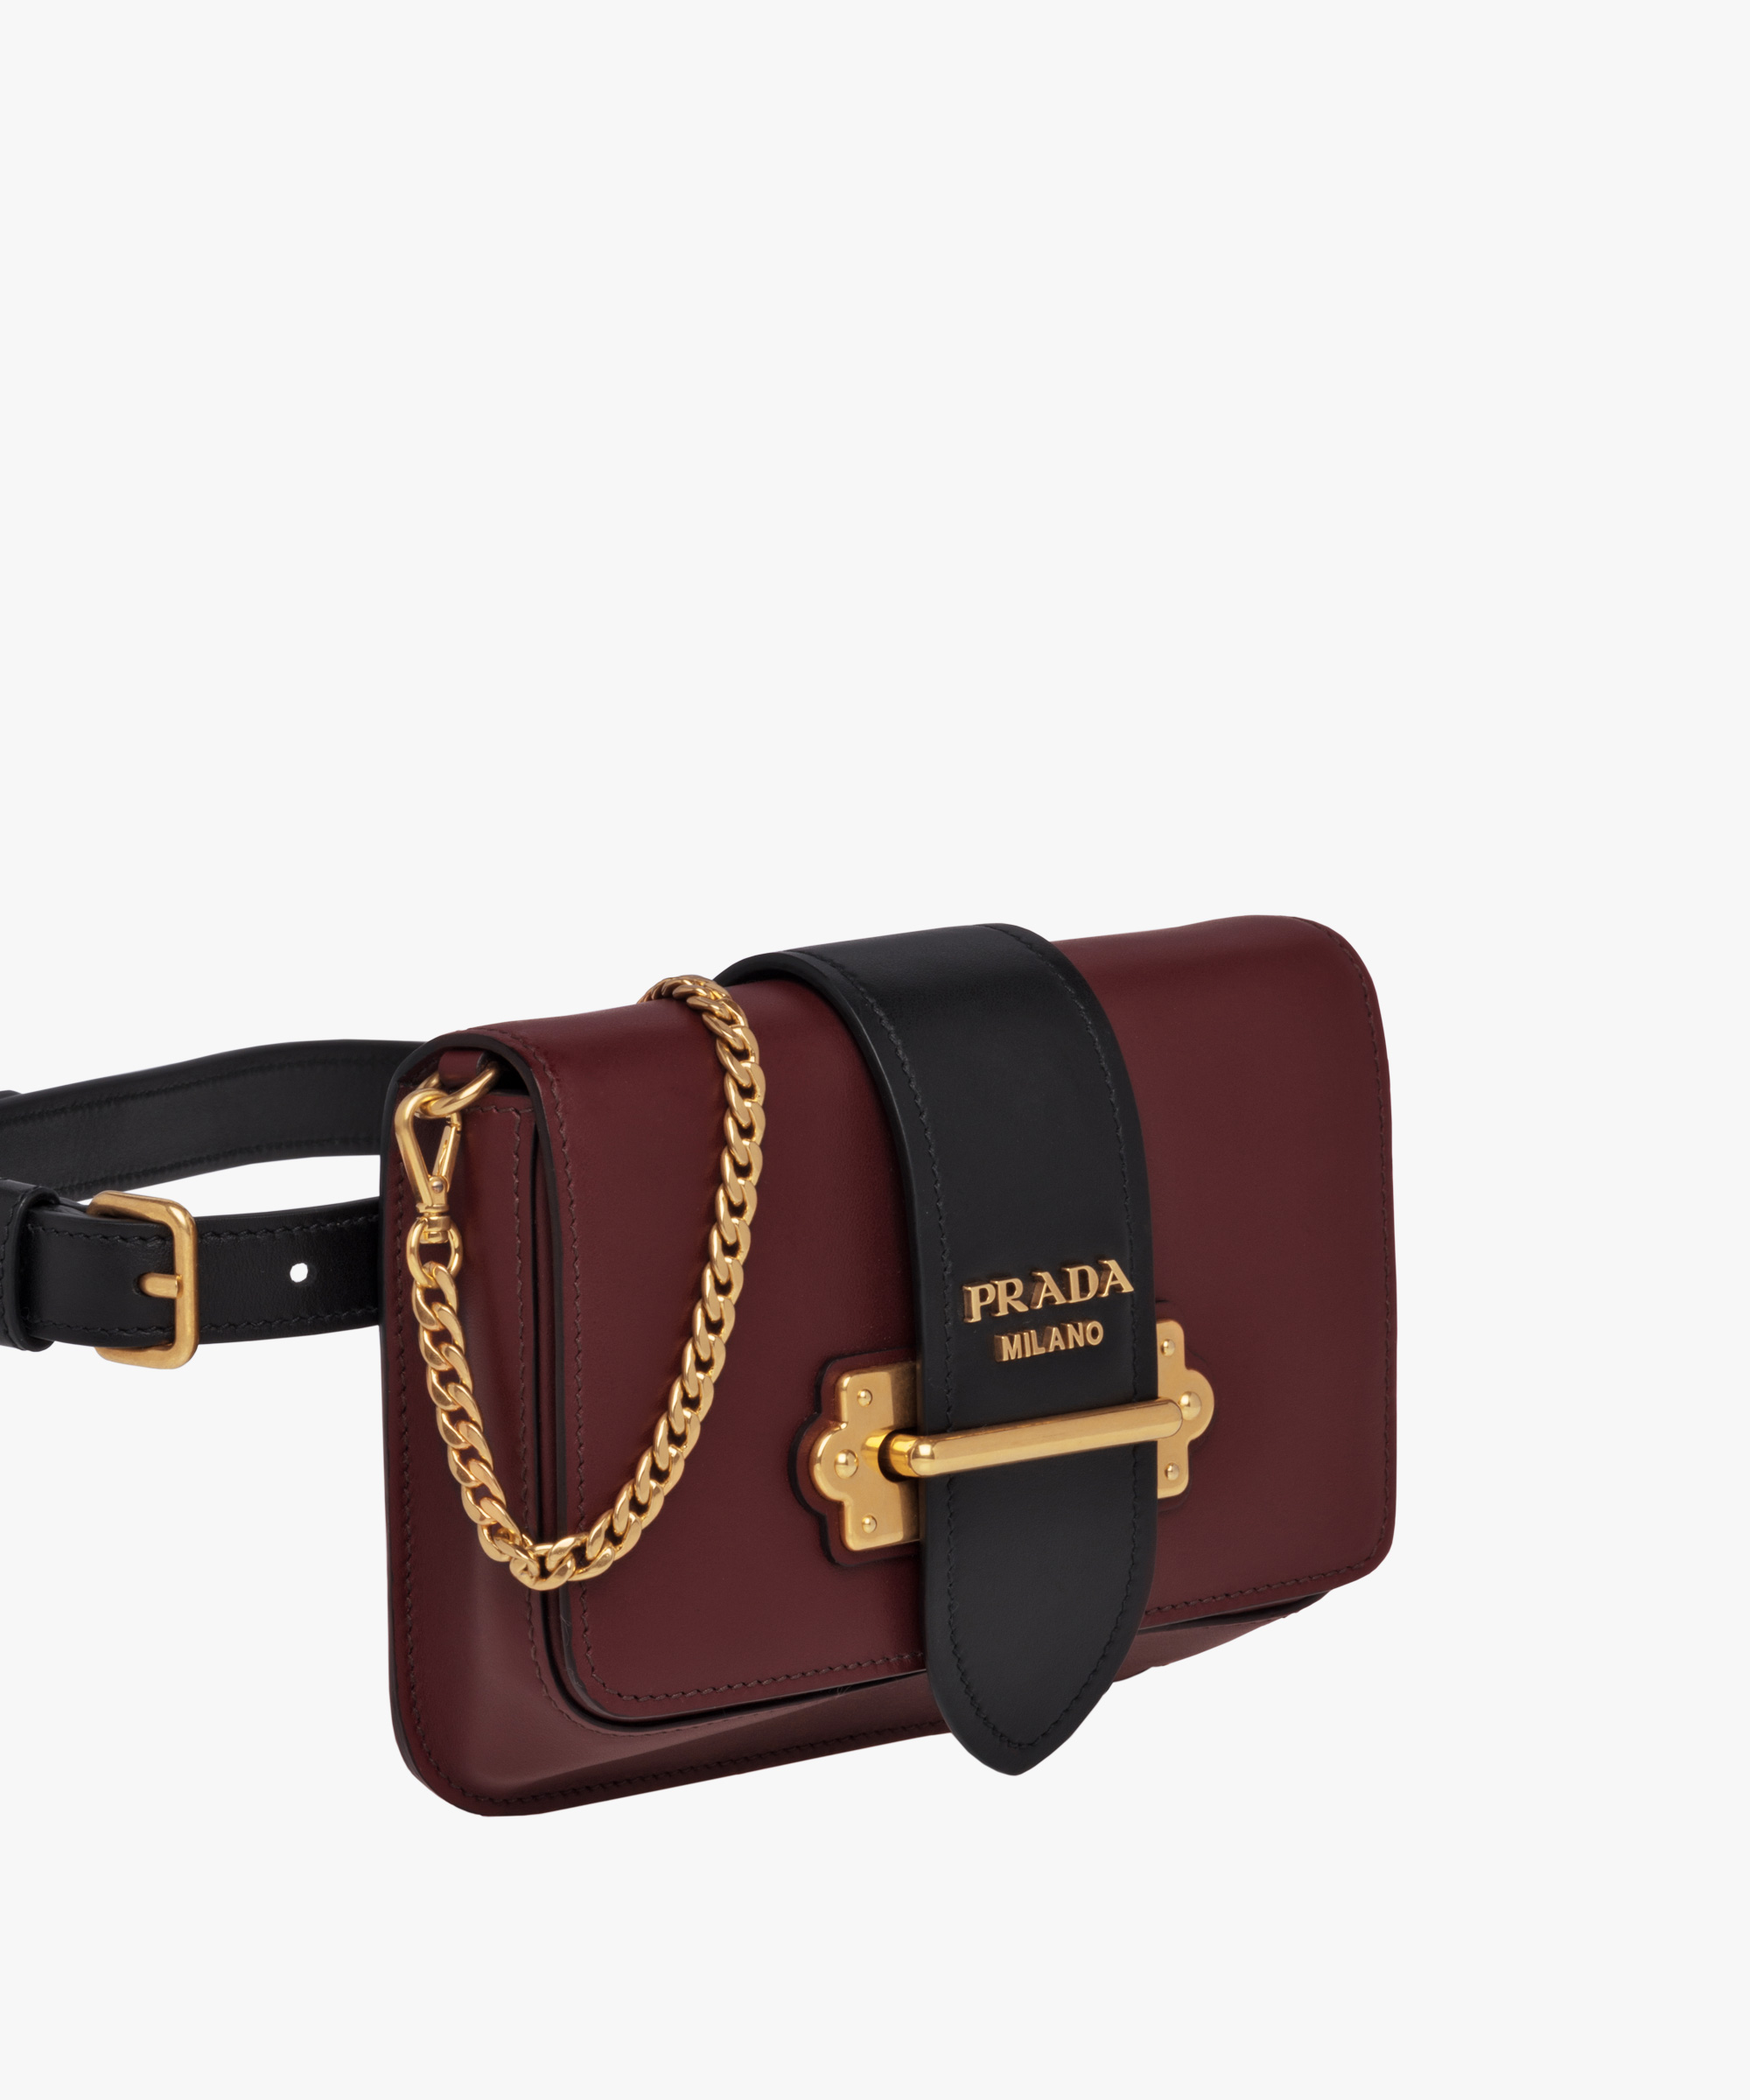 5d59994d4c01 ... Prada Cahier Belt Bag Prada GARNET RED/BLACK ...